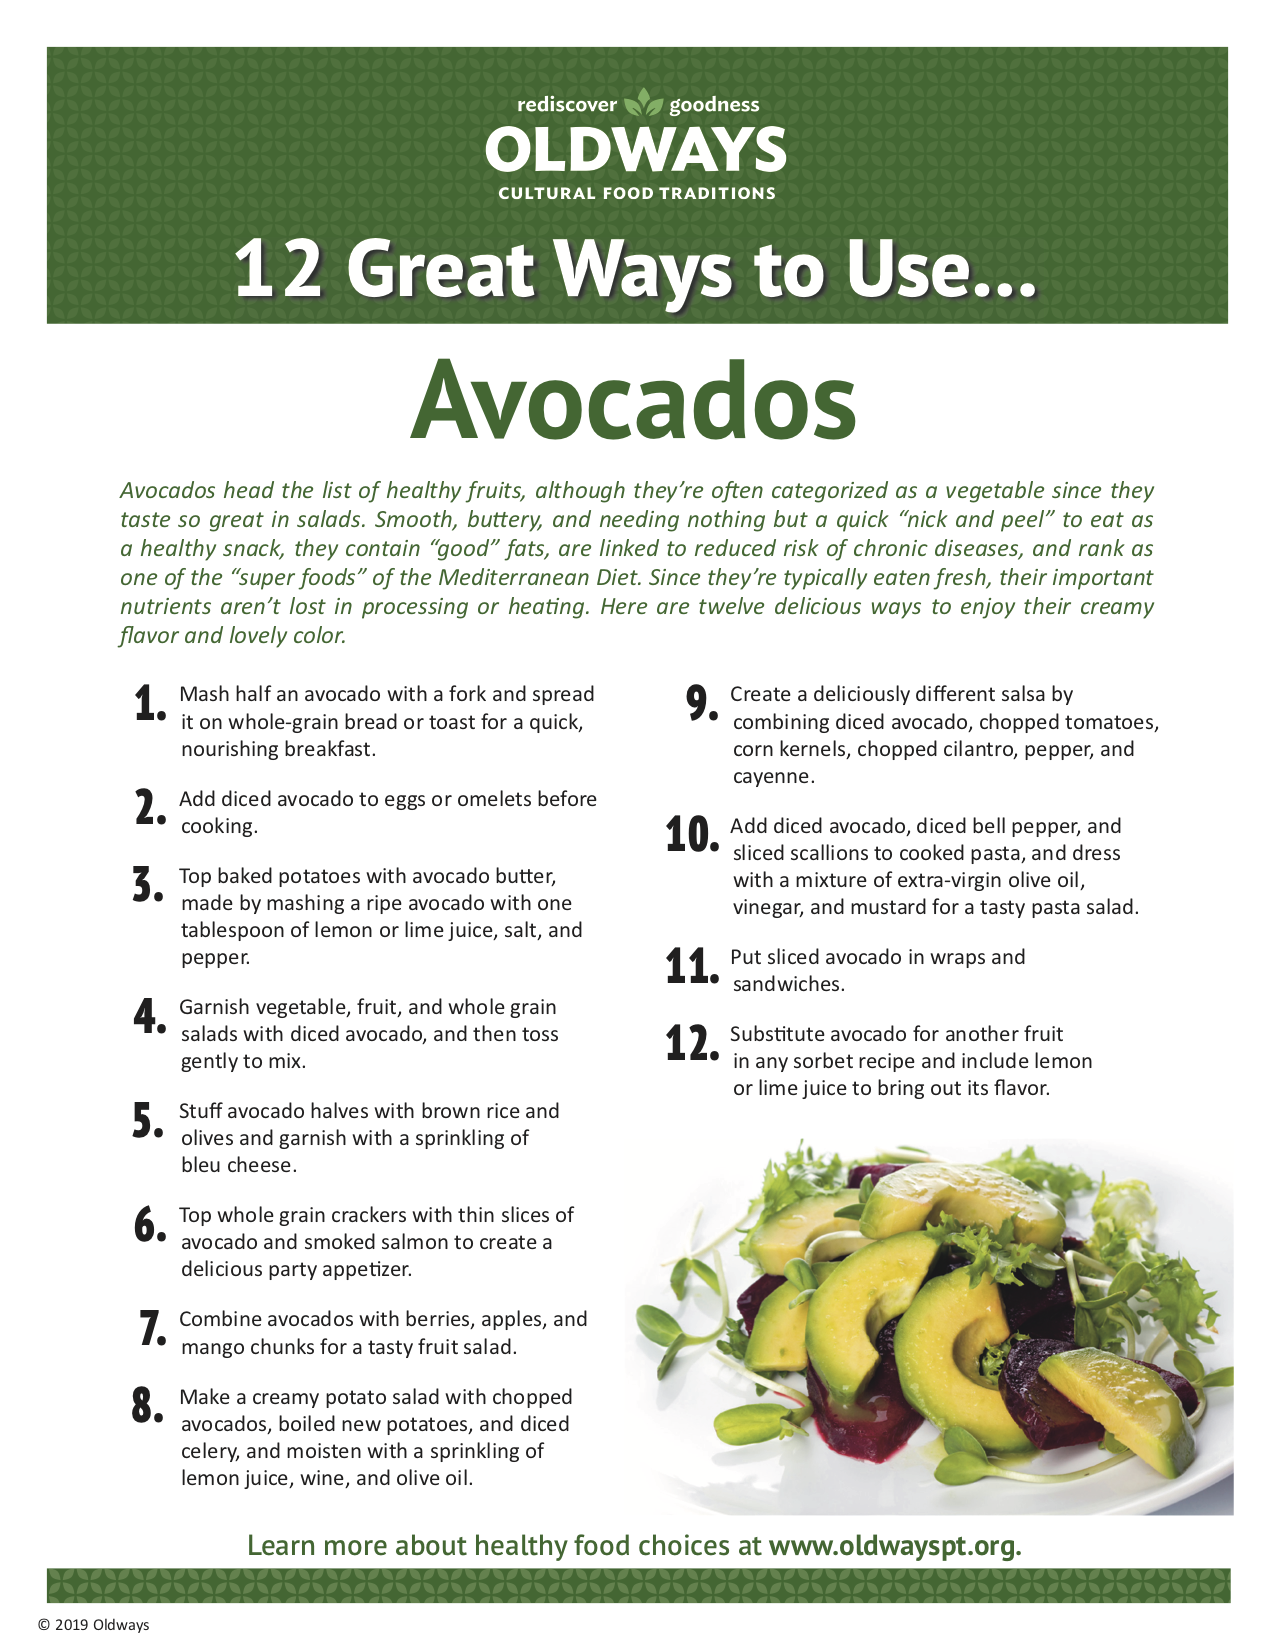 12ways_avocados.png